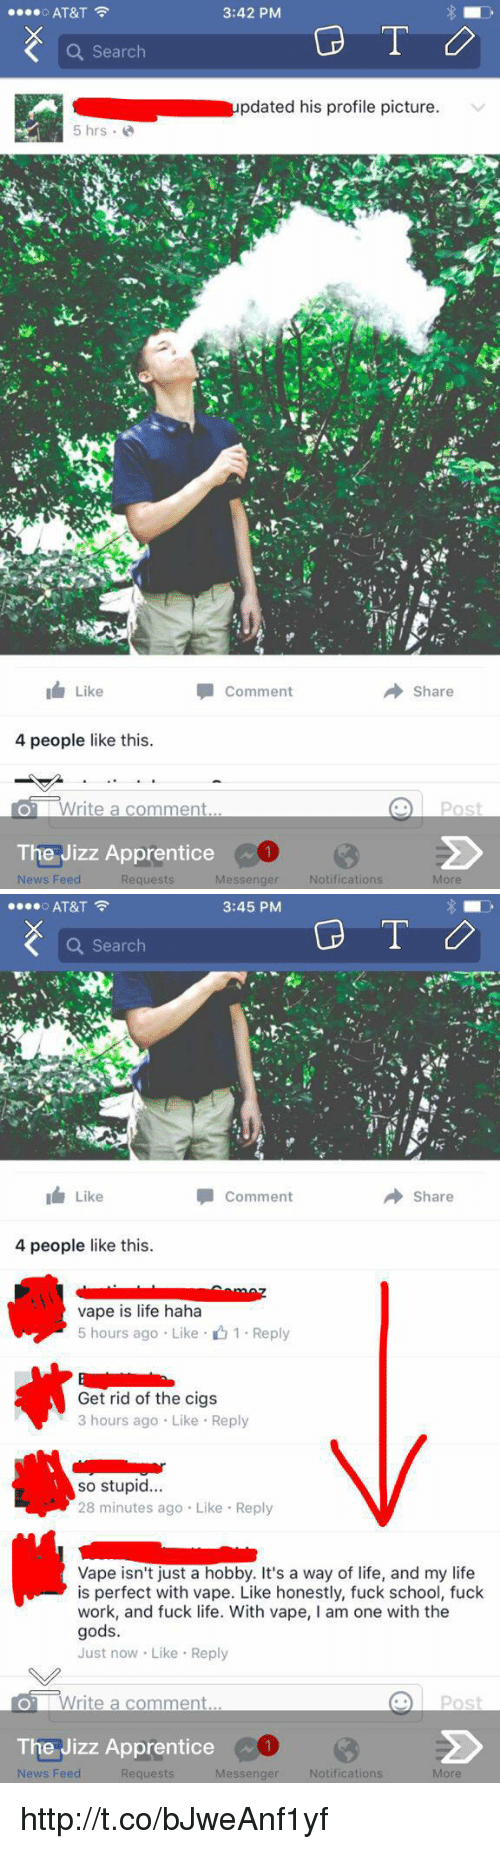 Jizz, Memes, and Messenger: AT&T  3:42 PM  o Search  pdated his profile picture.  5 hrs  I Like  Comment  Share  4 people like this.  LOT Write a comment  POS  The Jizz Apprentice  Notifications  News Feed  Requests  Messenger   AT&T  3:45 PM  o Search  Comment  Share  Like  4 people like this.  vape is life haha  5 hours ago Like 1 Reply  Get rid of the cigs  3 hours ago Like Reply  so stupid...  28 minutes ago Like Reply  Vape isn't just a hobby. It's a way of life, and my life  is perfect with vape. Like honestly, fuck school, fuck  work, and fuck life. With vape  l am one with the  gods.  Just now. Like Reply  Post  o Write a comment  The Jizz Apprentice  News Feed  Messenger  Notifications  More  Requests http://t.co/bJweAnf1yf